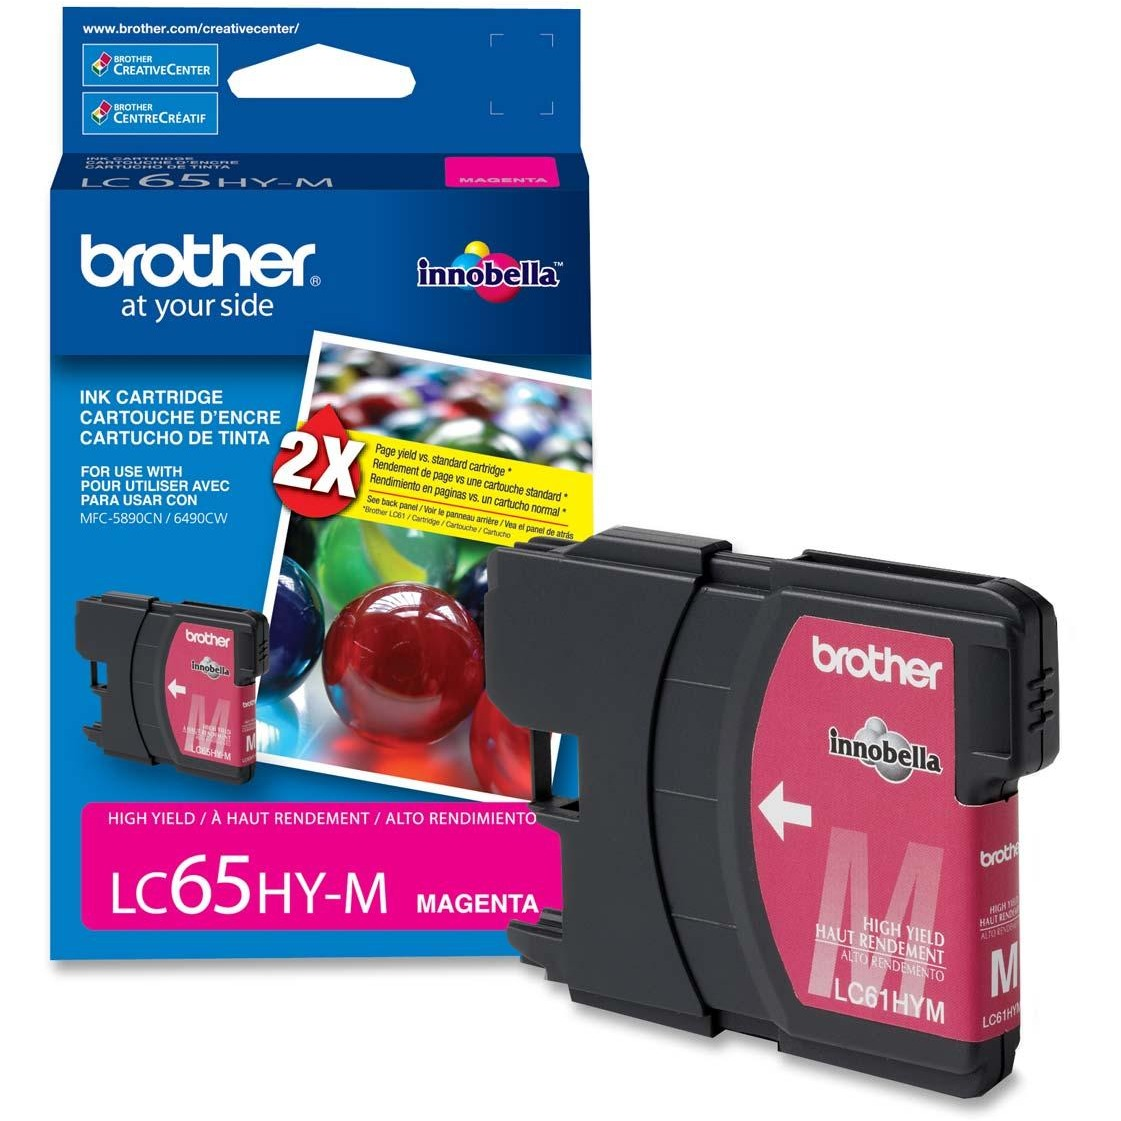 Brother, VCT900, LC65 High-yield Ink Cartridges, 1 Each